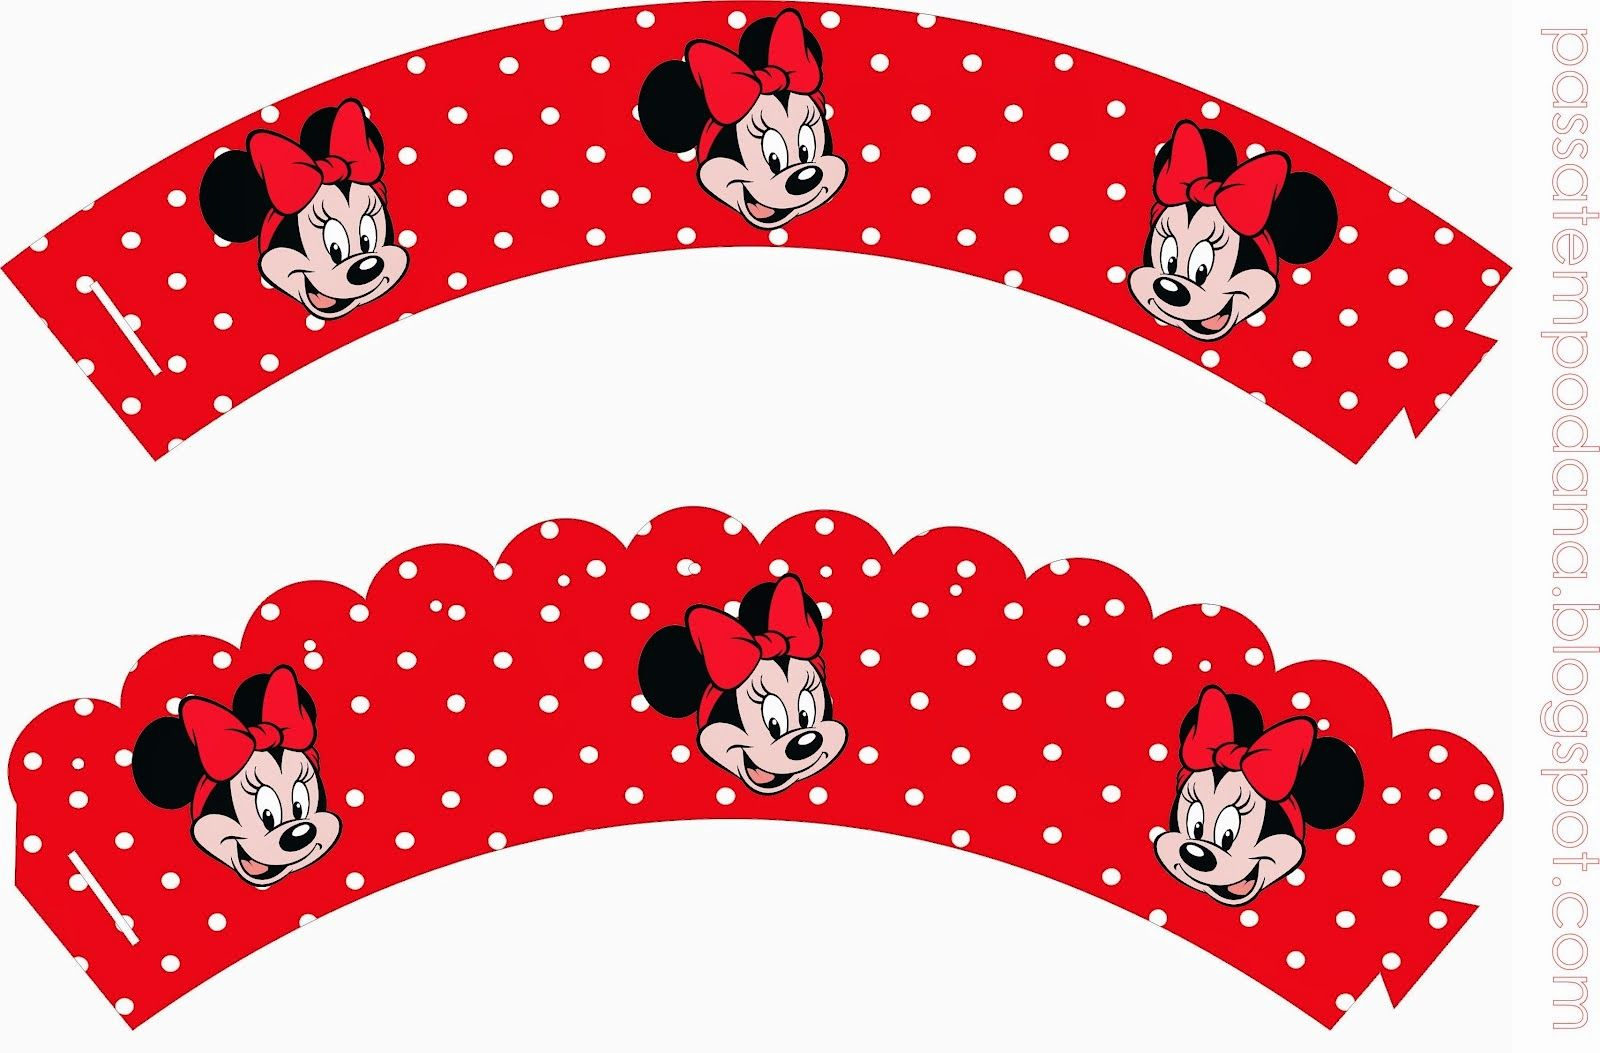 Free Printable Cupcake Wrappers. | Fiesta Minnie Mouse | Pinterest - Free Printable Minnie Mouse Cupcake Wrappers